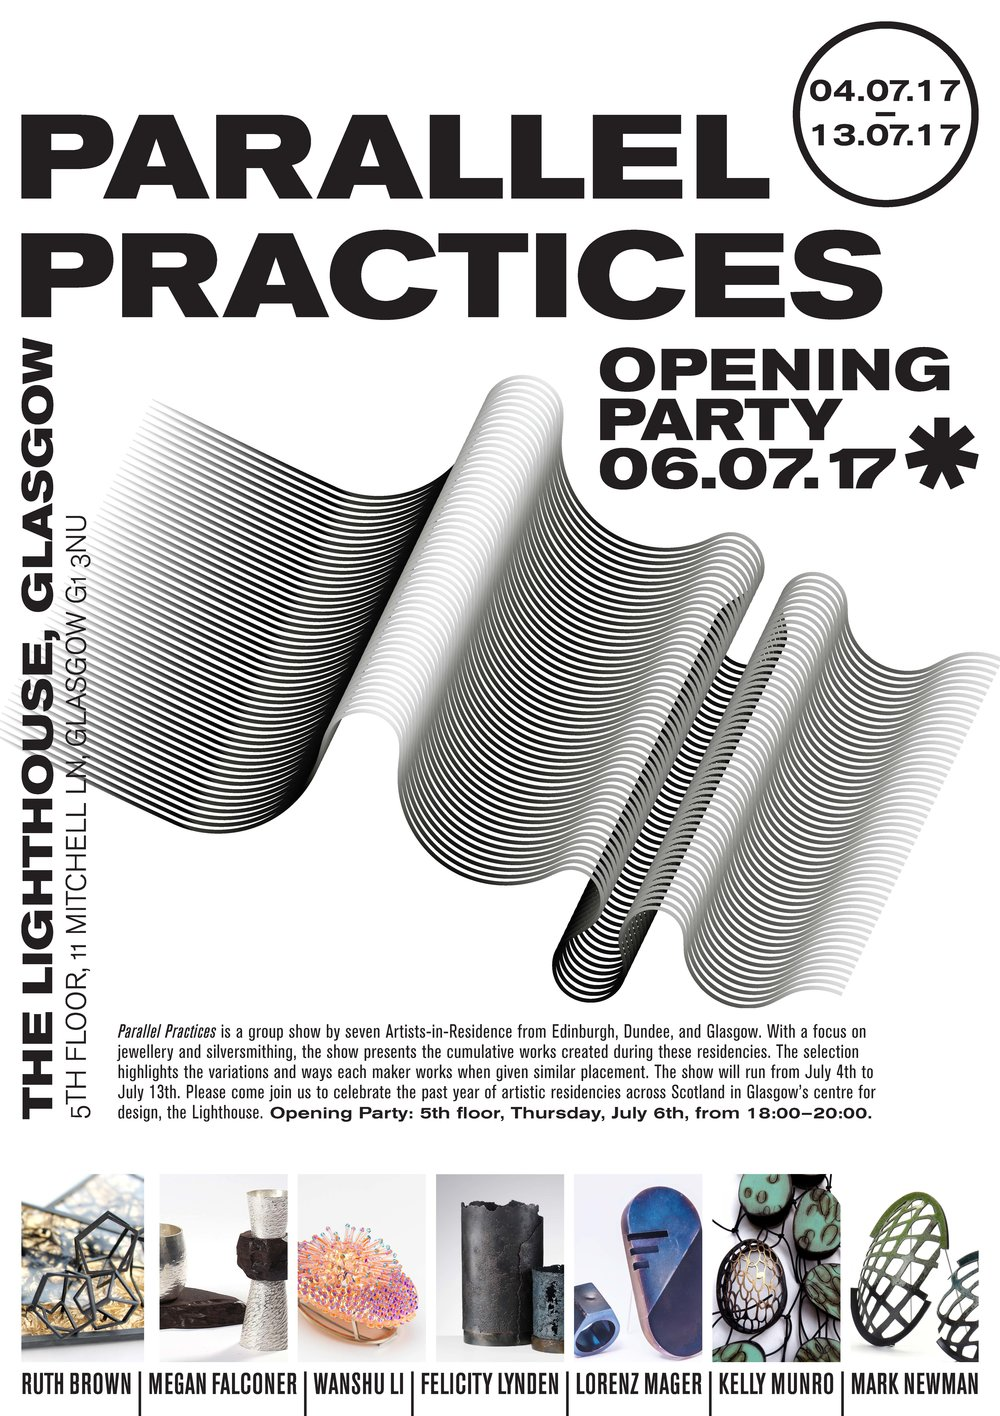 Parallel-Practices-Poster-A0jpeg.jpg